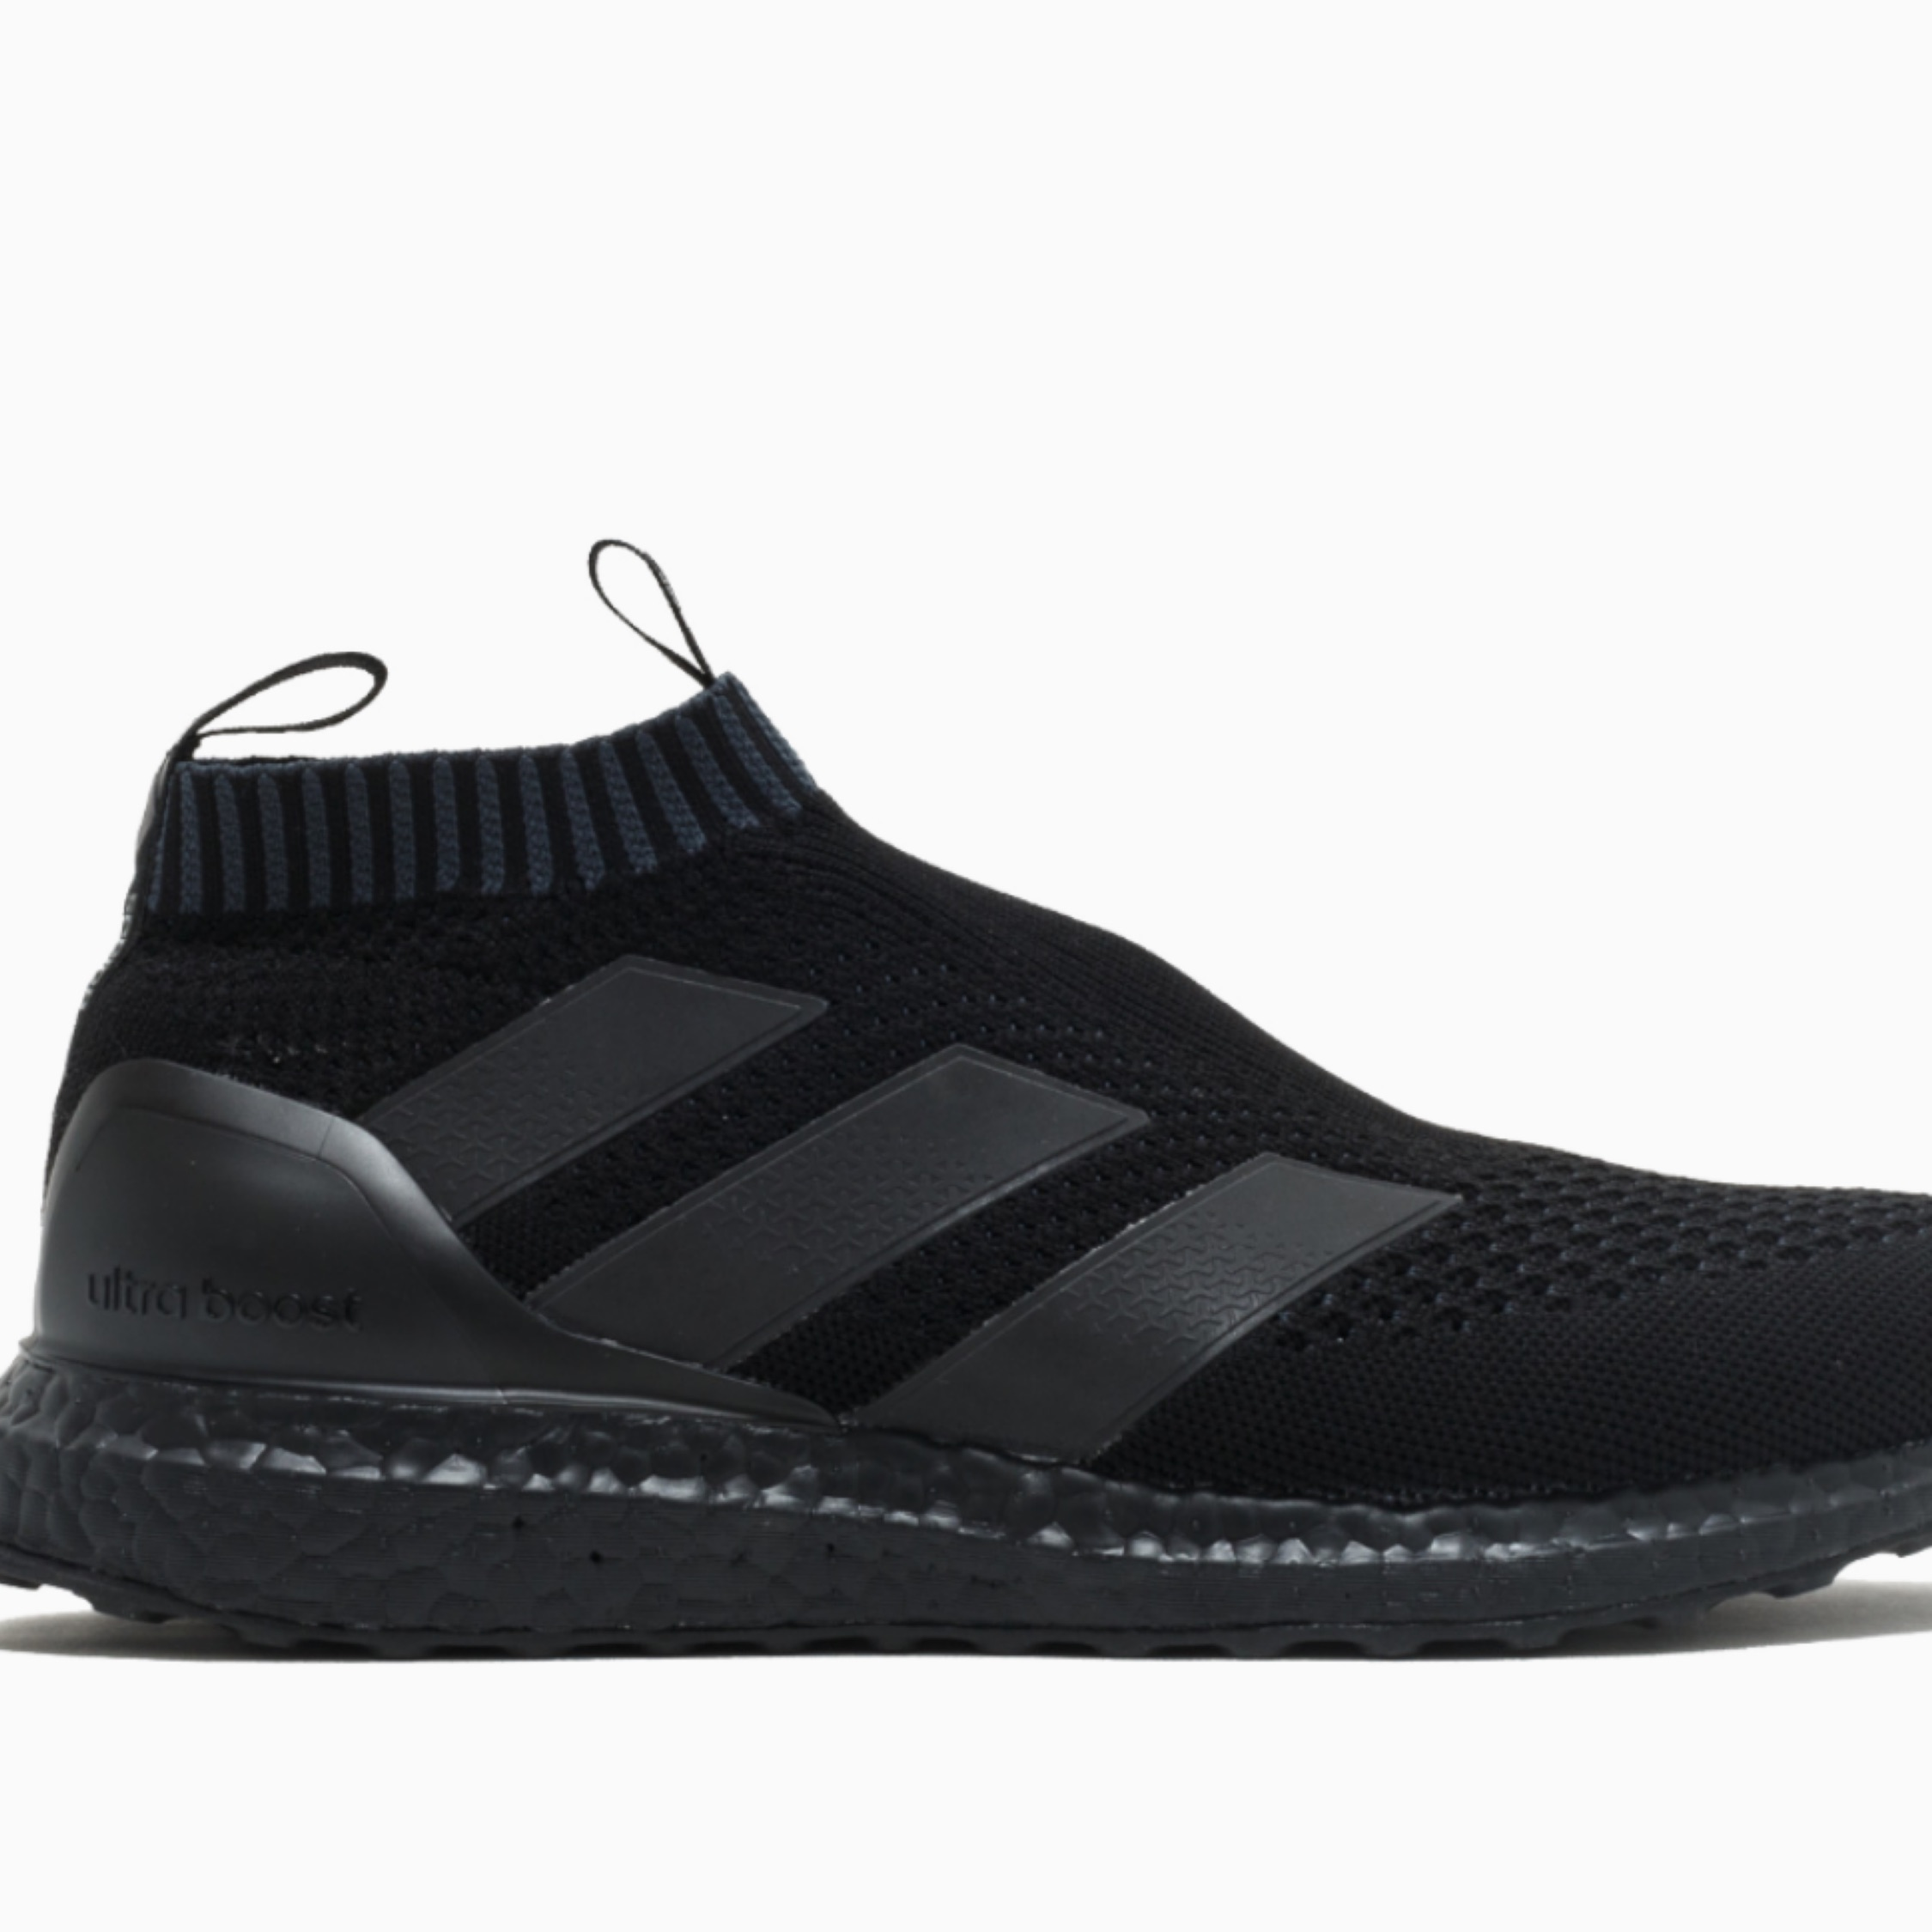 Adidas Purecontrol Ultra Boost Black Red